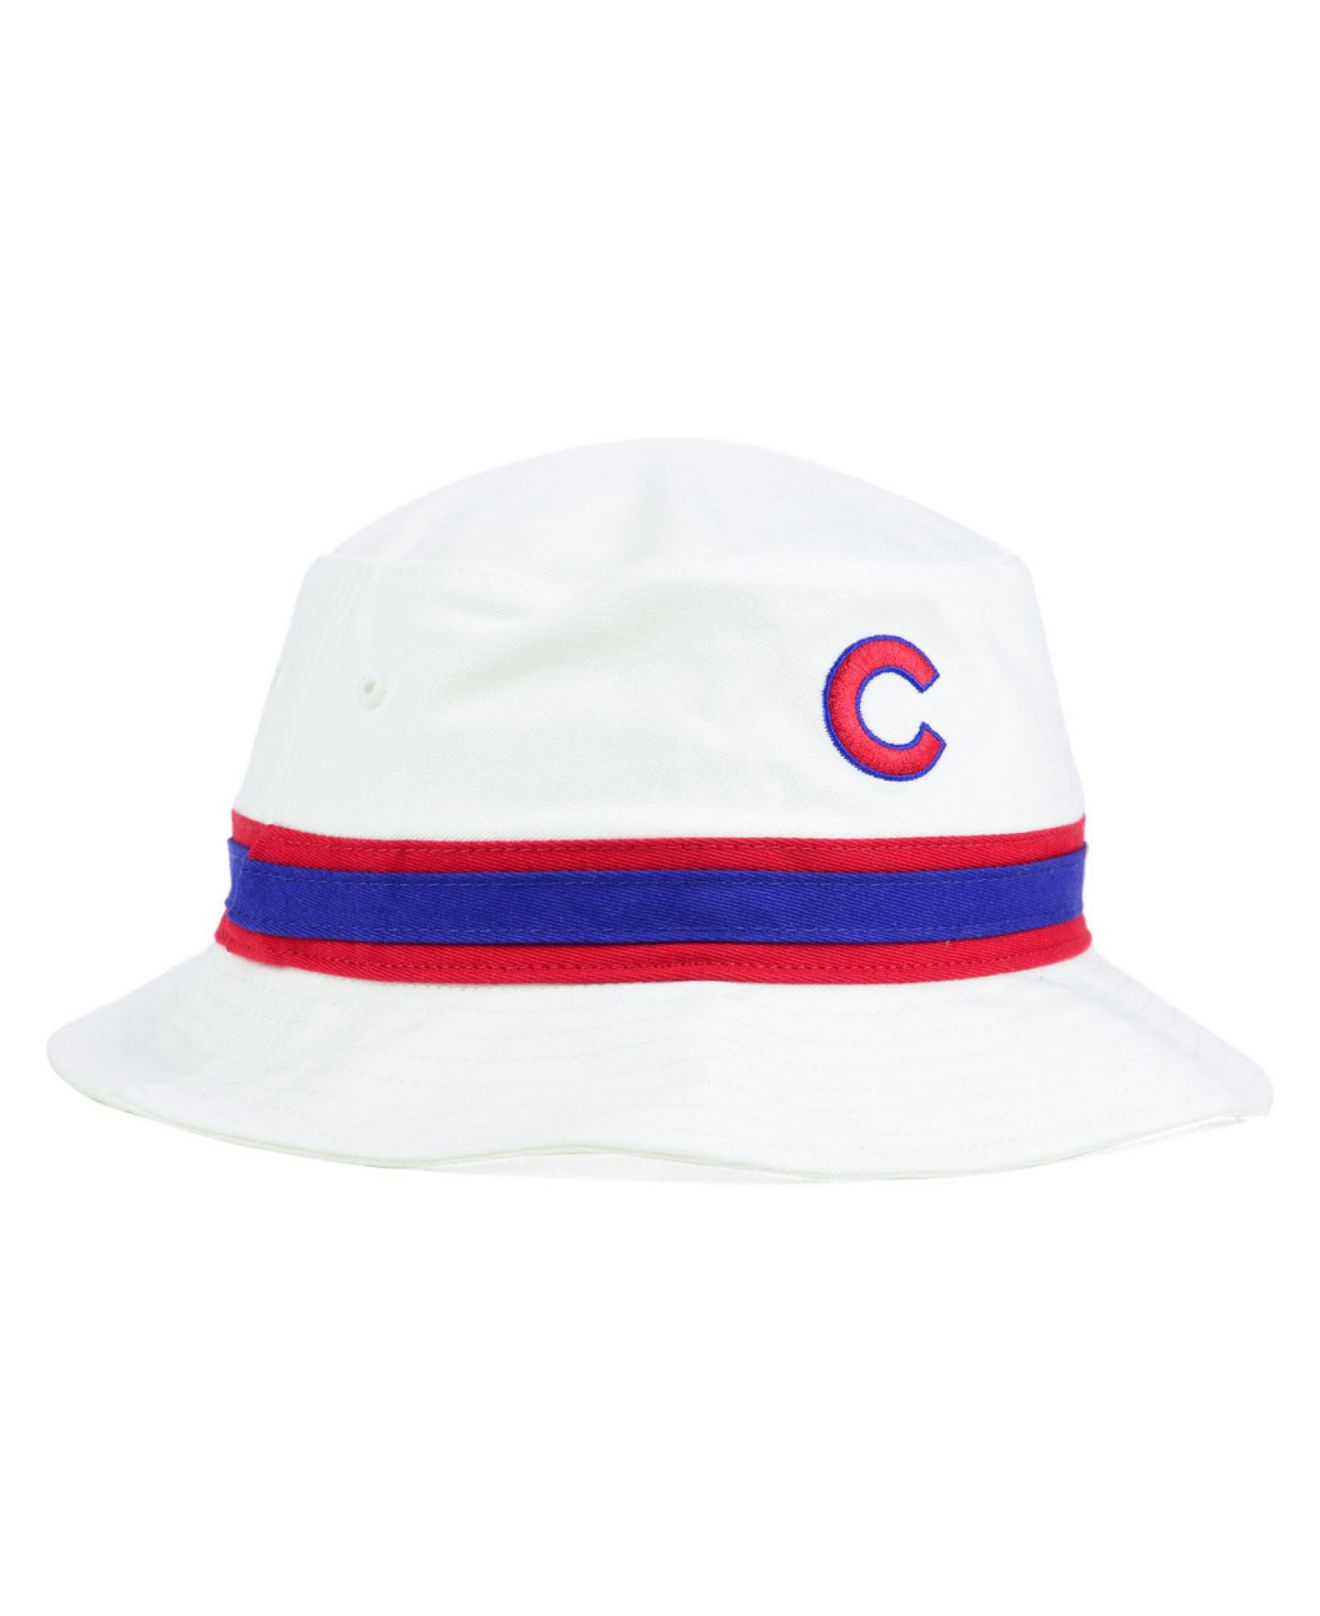 19c0dd3f485 ... cheap lyst 47 brand chicago cubs striped bucket hat in white 8b48e eec07